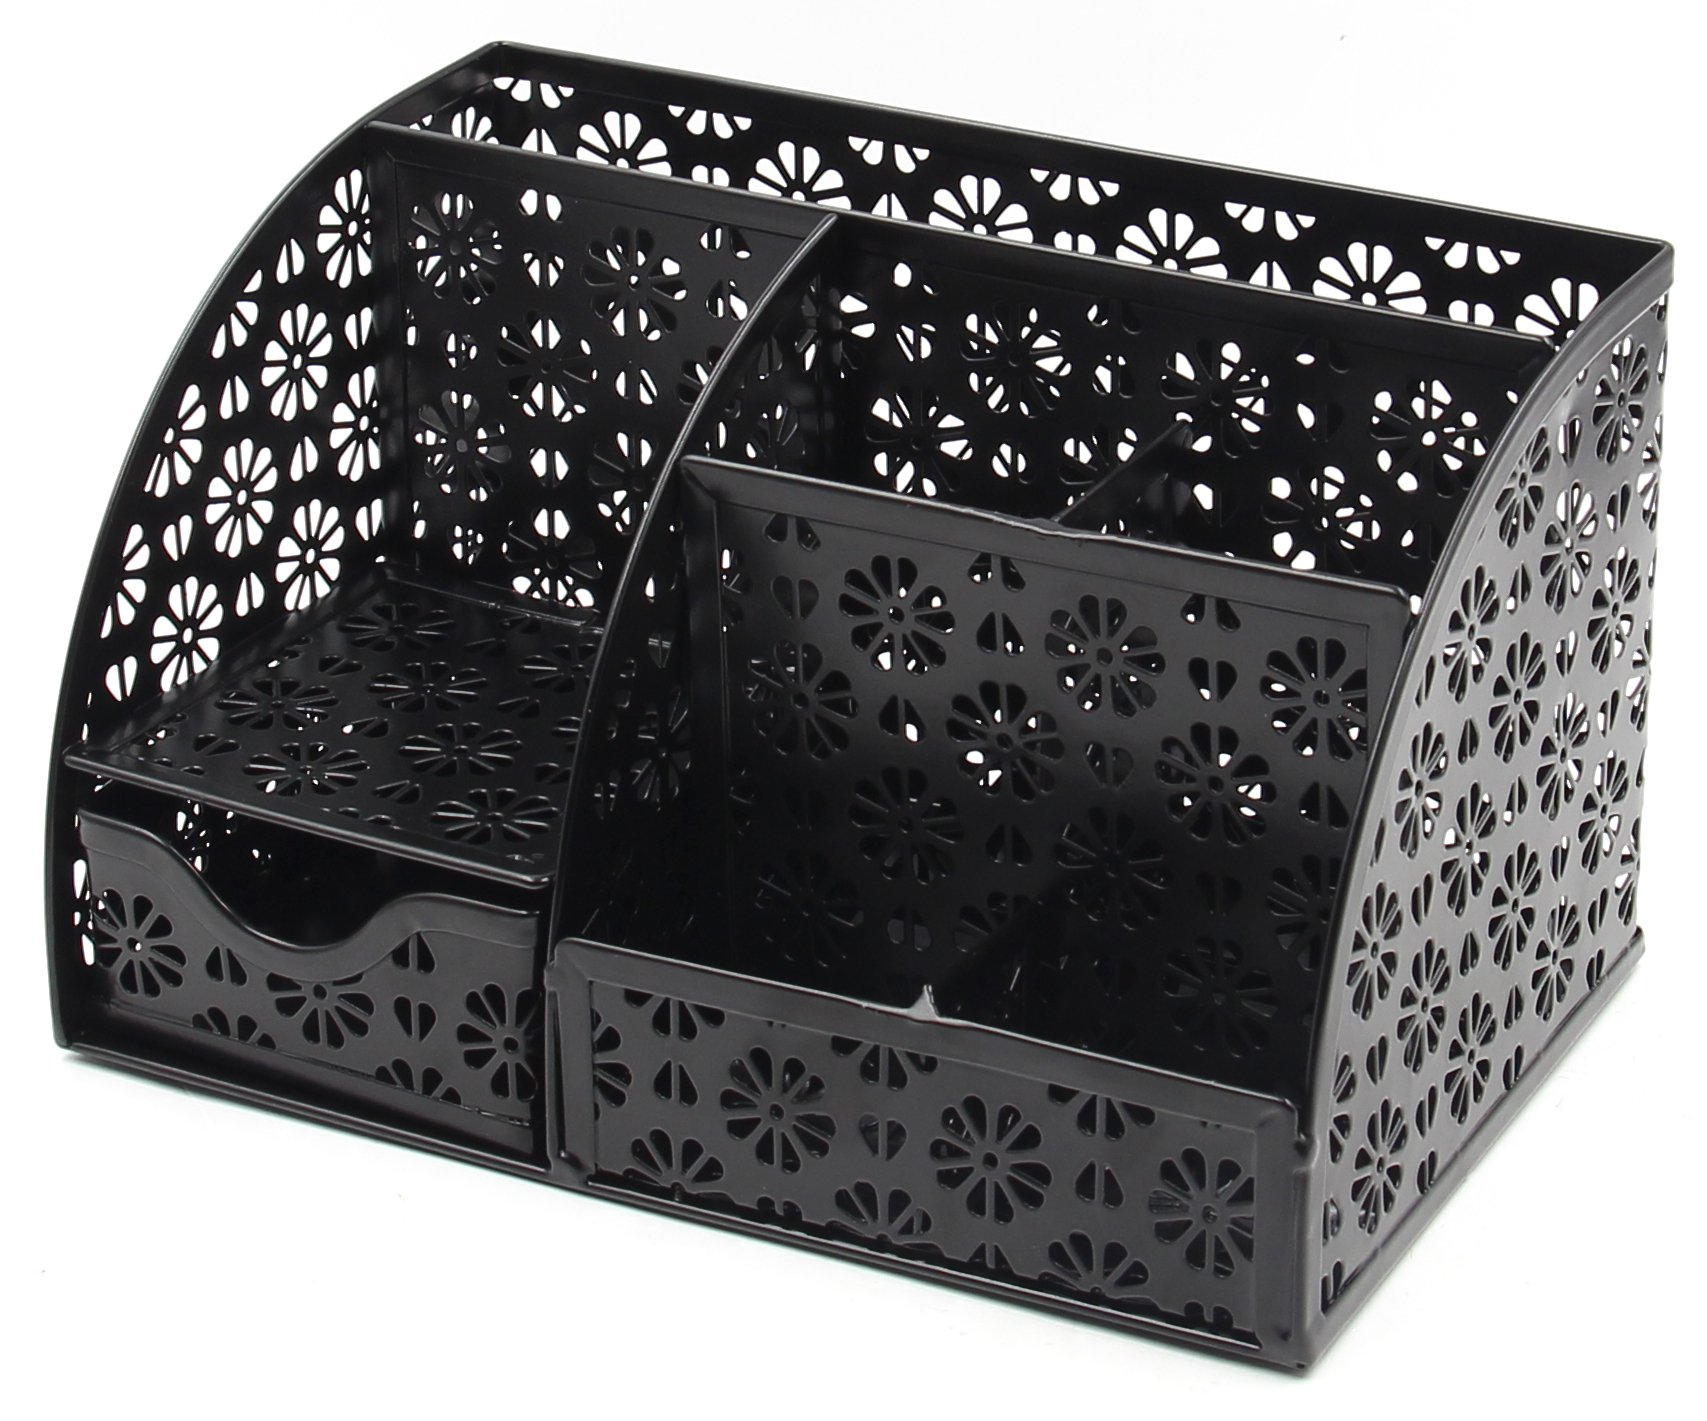 EasyPAG Office Desk Organizer with Drawer Solid Metal Snow Shaped Pattern Design,Black by EasyPag (Image #2)